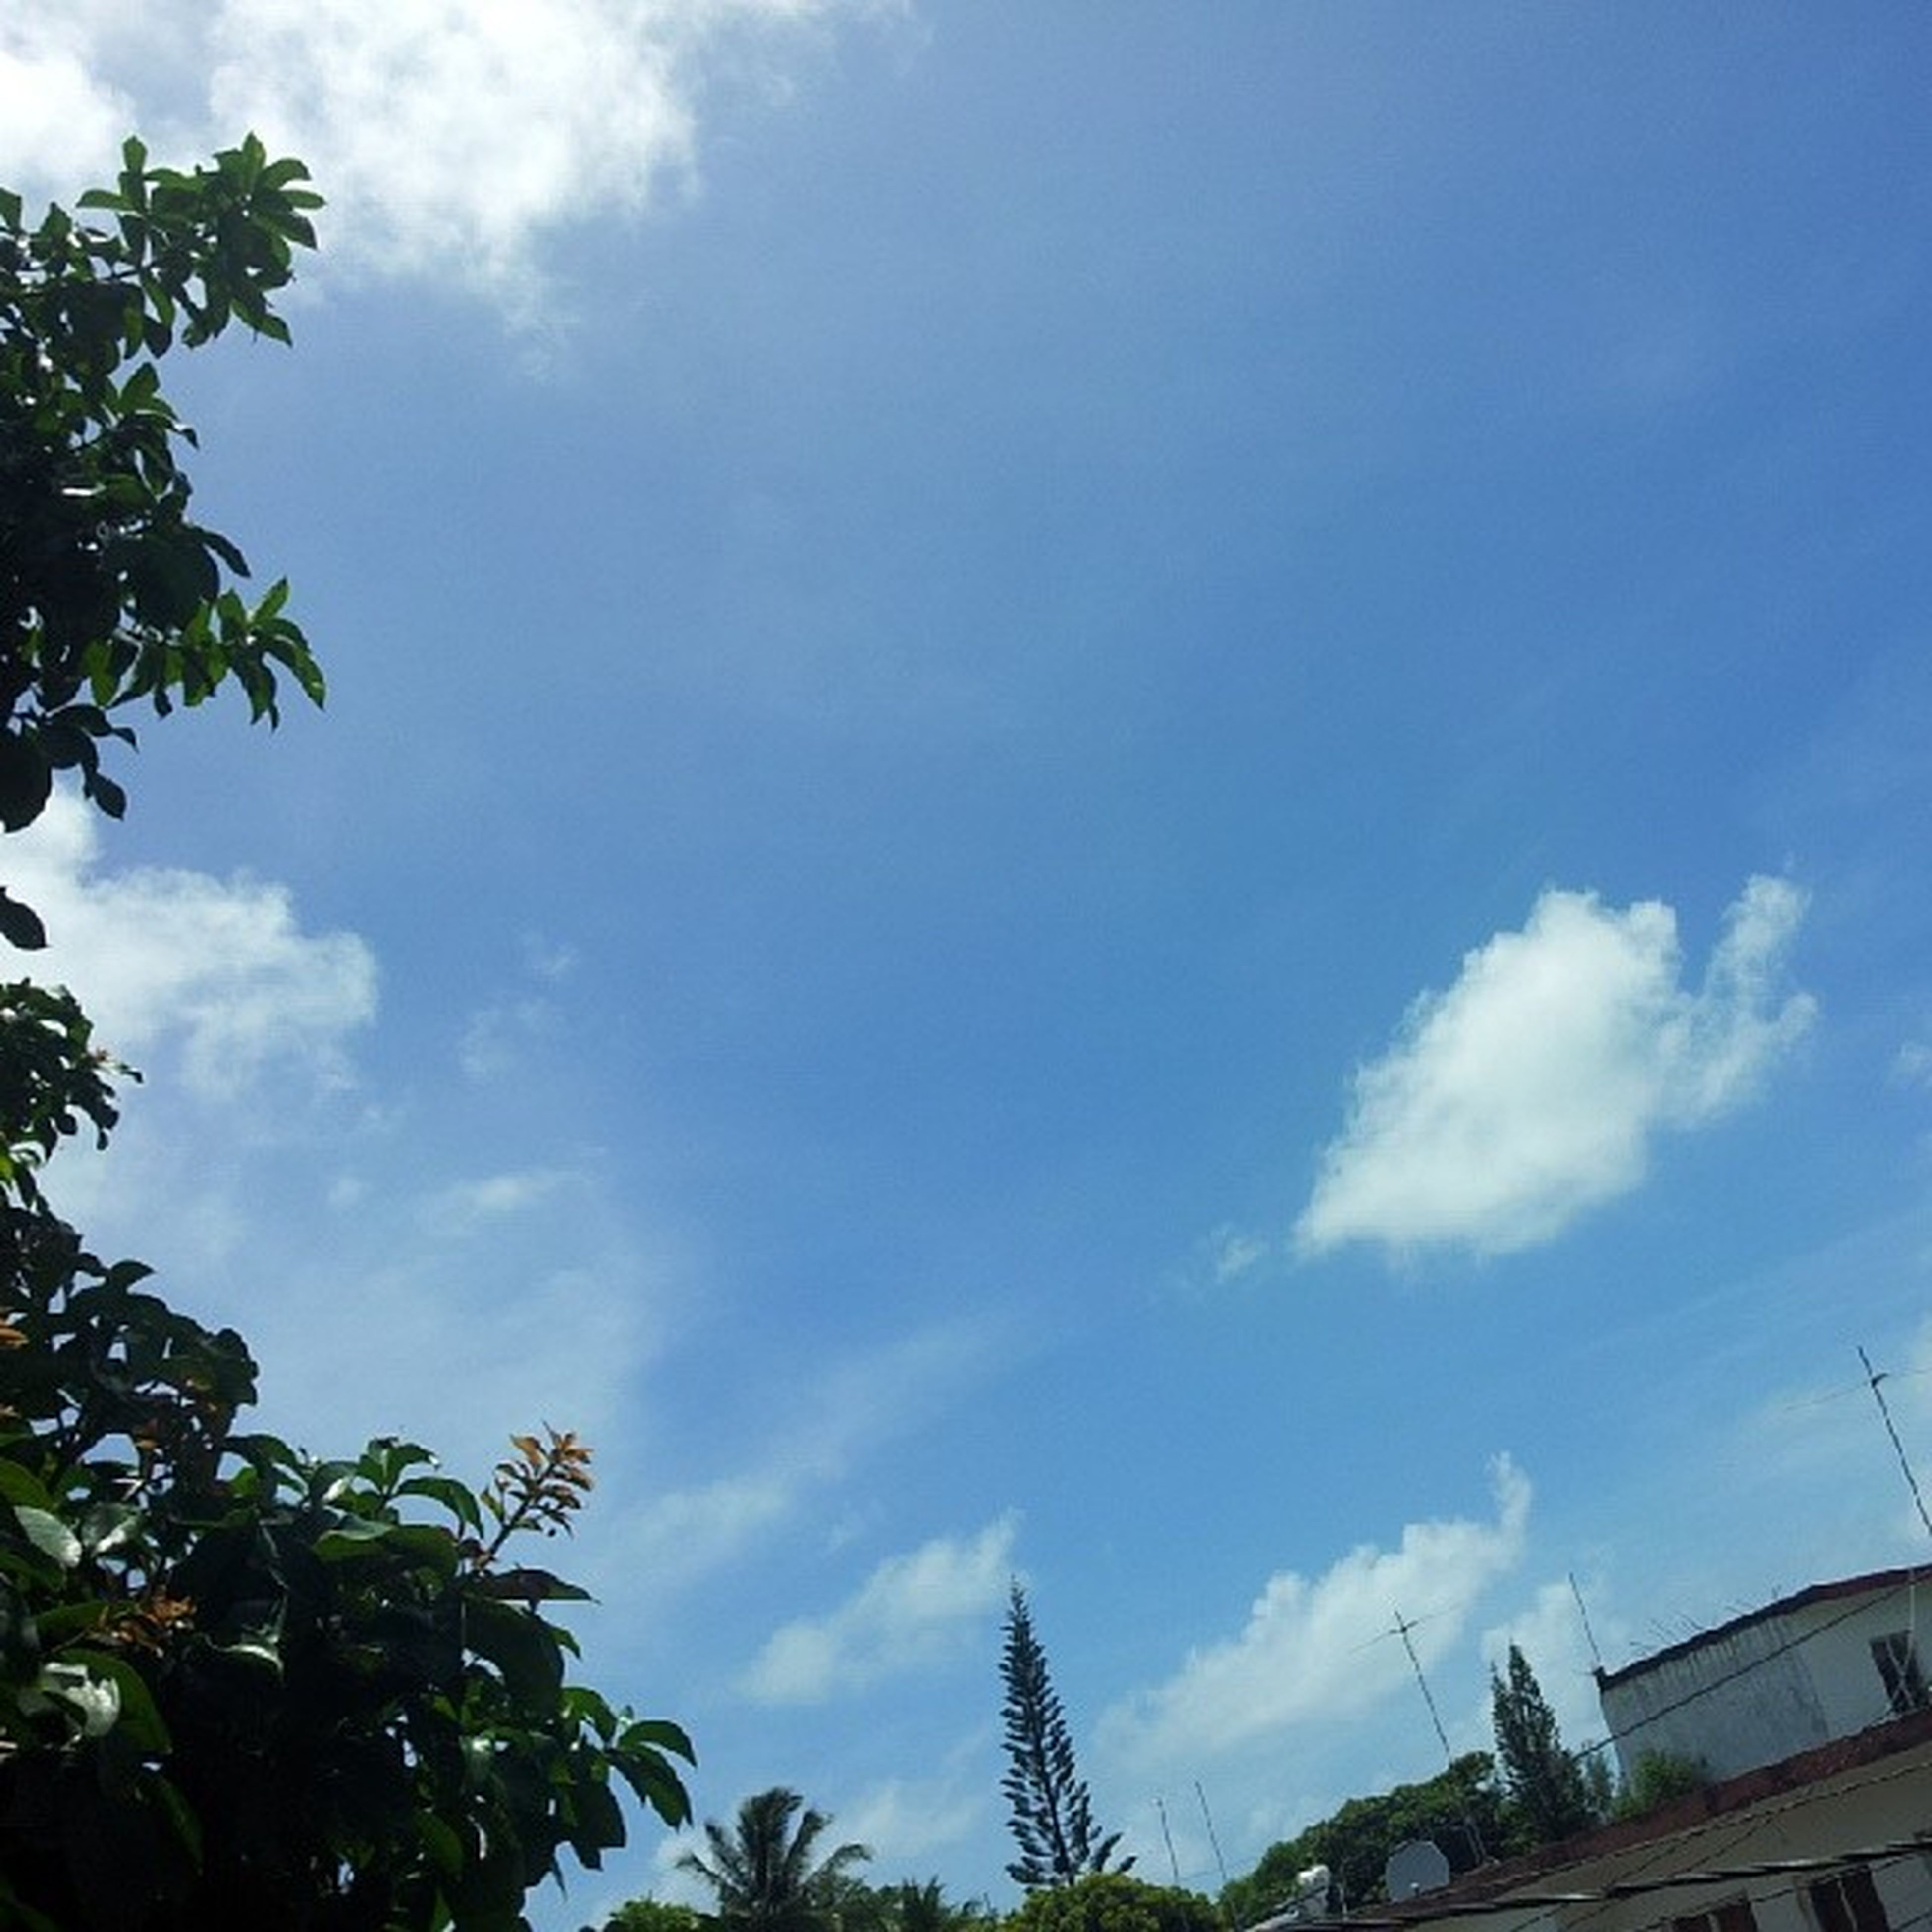 low angle view, sky, tree, cloud - sky, cloud, blue, building exterior, built structure, architecture, cloudy, nature, growth, day, outdoors, high section, no people, branch, beauty in nature, tranquility, house